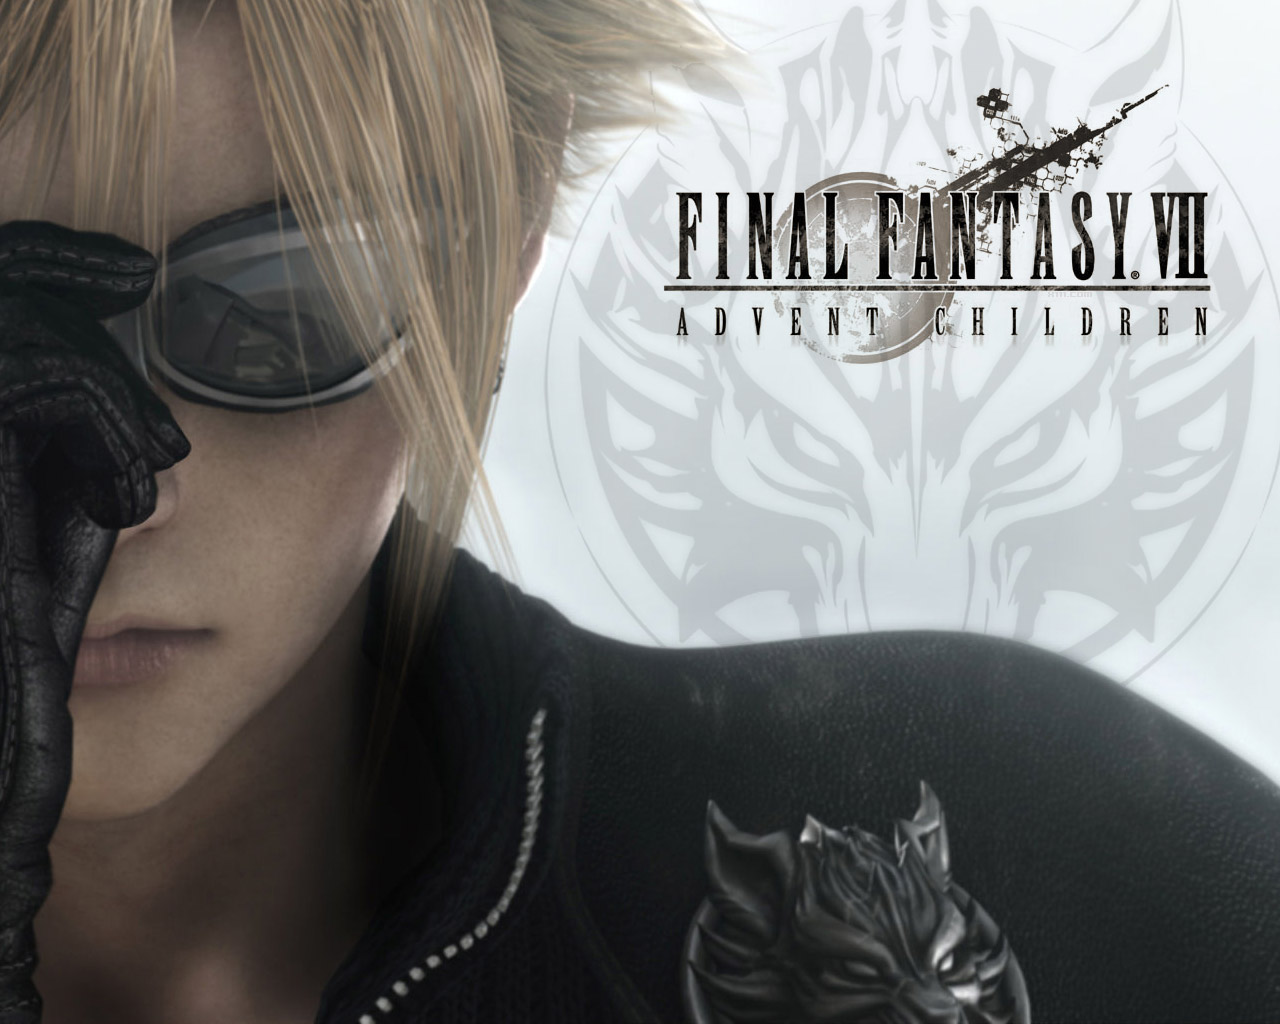 ... the final fantasy vii series this is the 3rd film for final fantasy